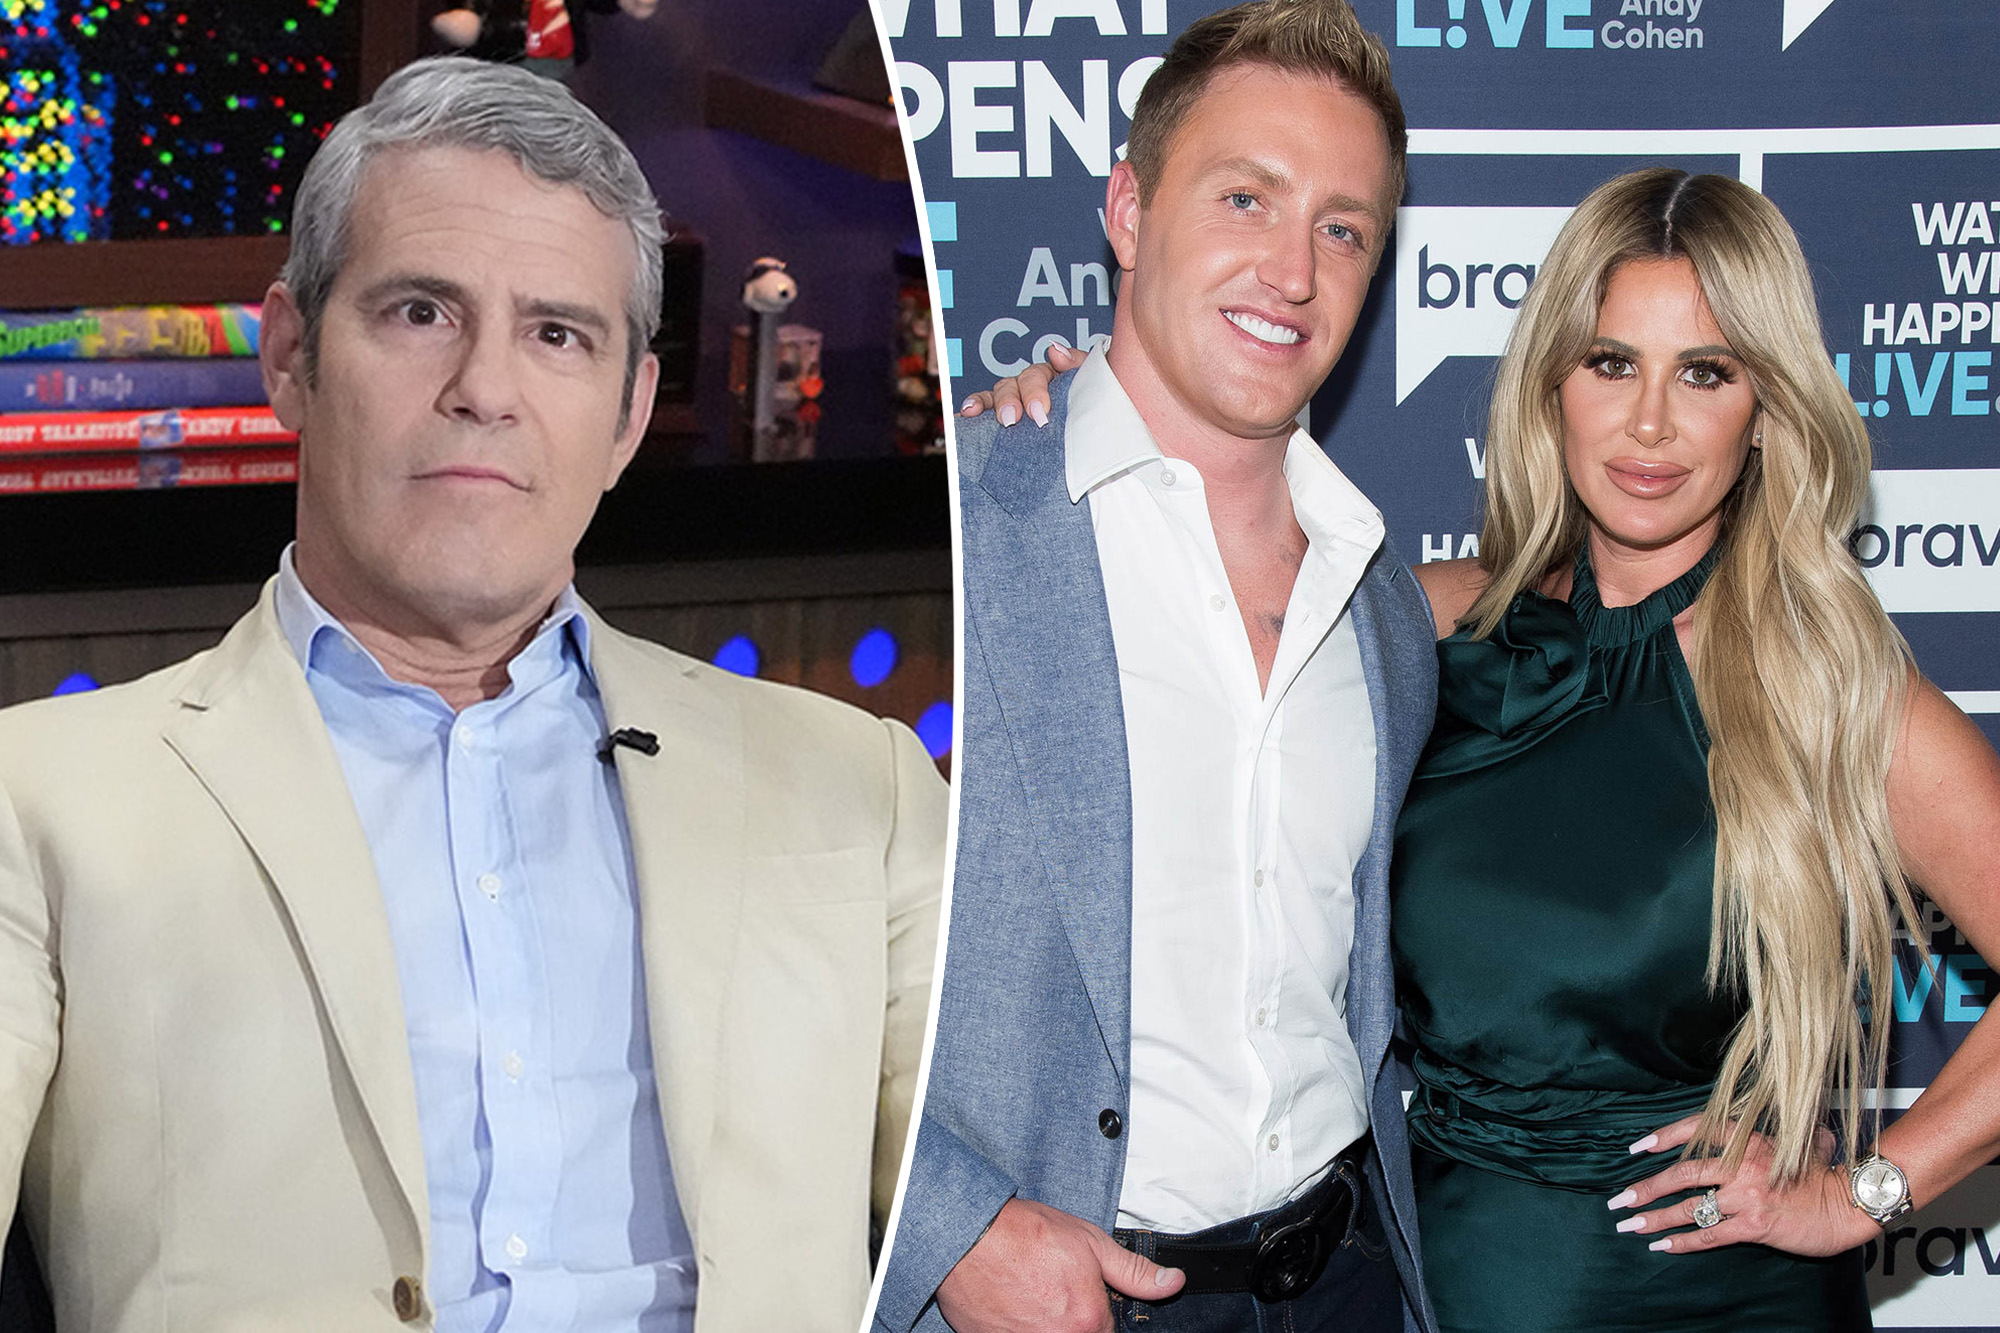 Andy Cohen practically punched by a 'Right Housewives' hubby: 'He had a gun'